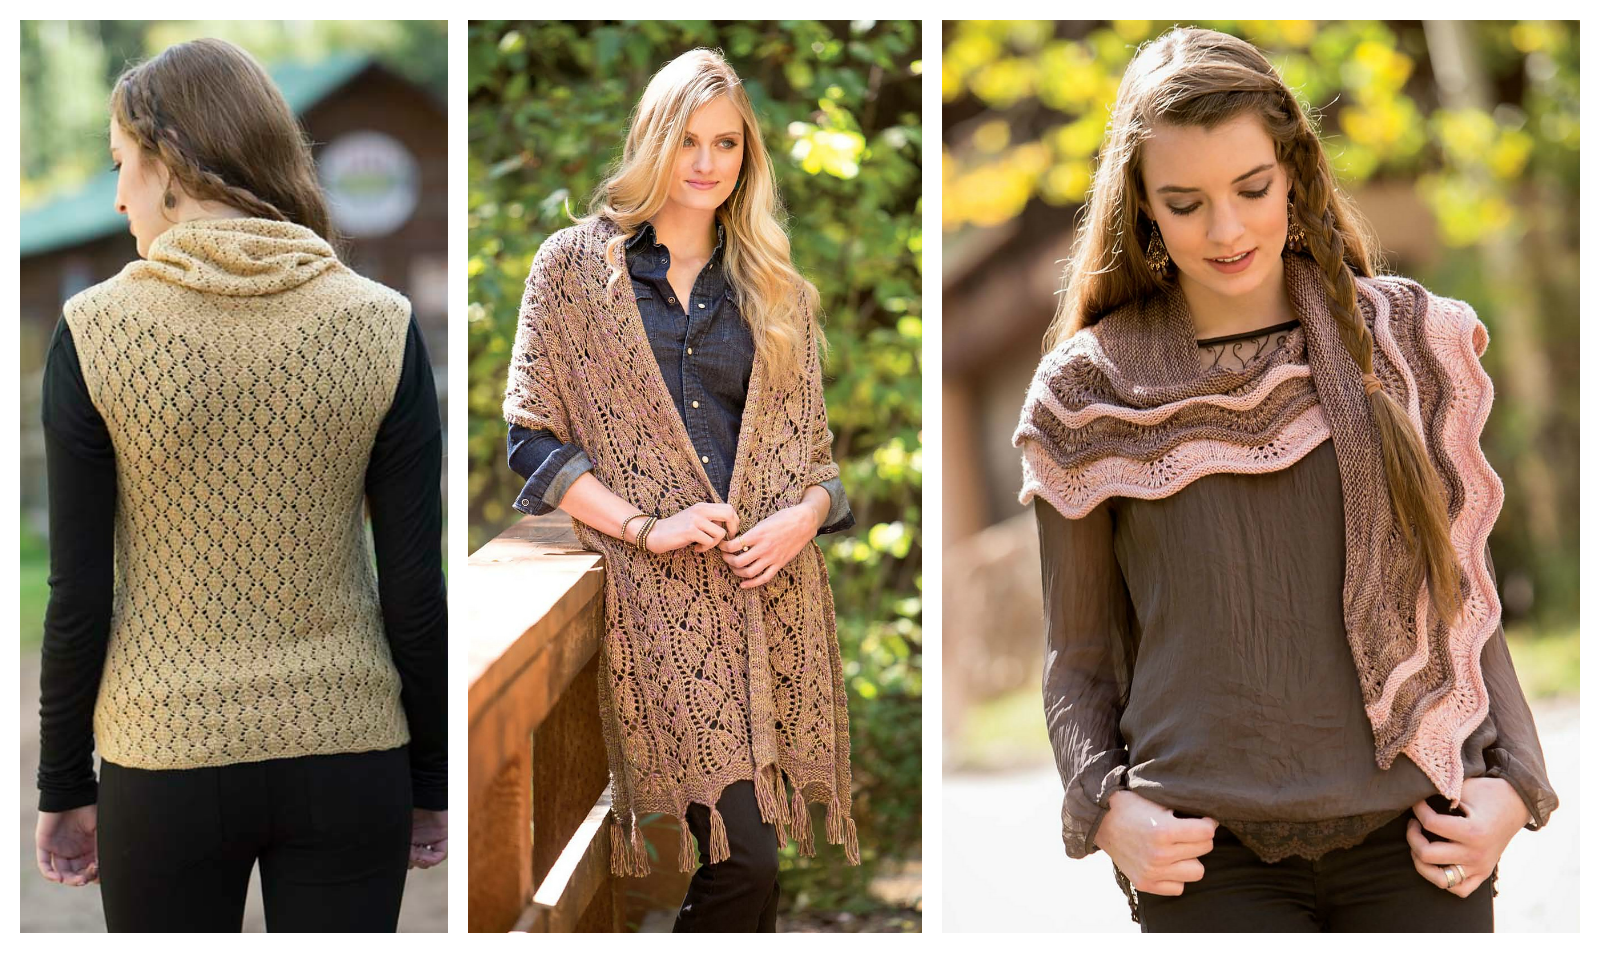 New Lace Knitting Book Review